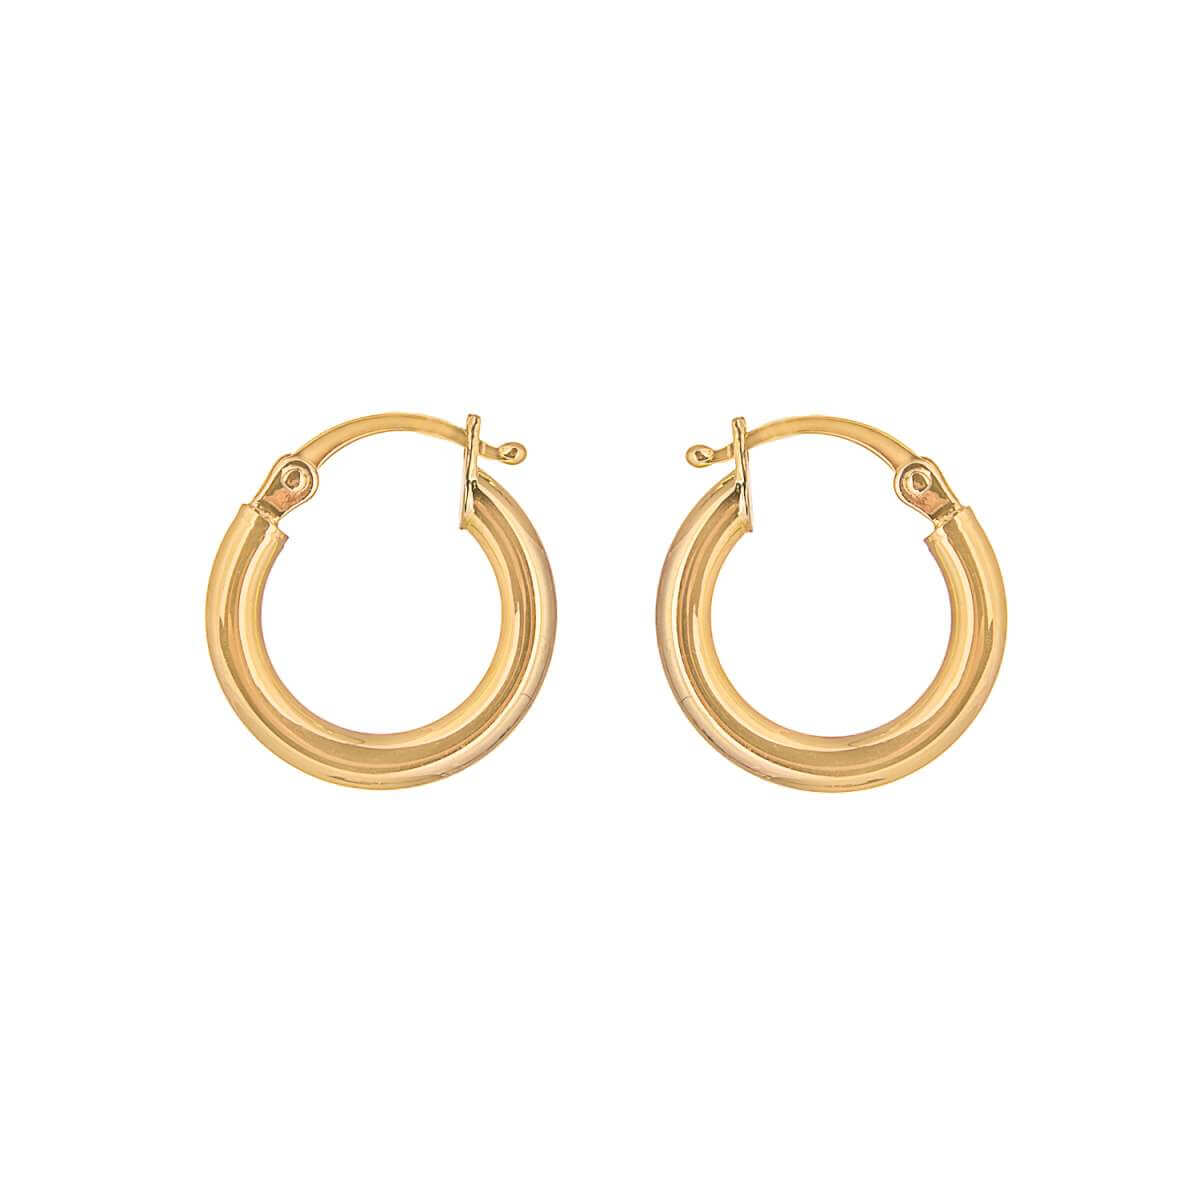 9ct Gold 10mm Lightweight Hinged Hollow Hoop Earrings